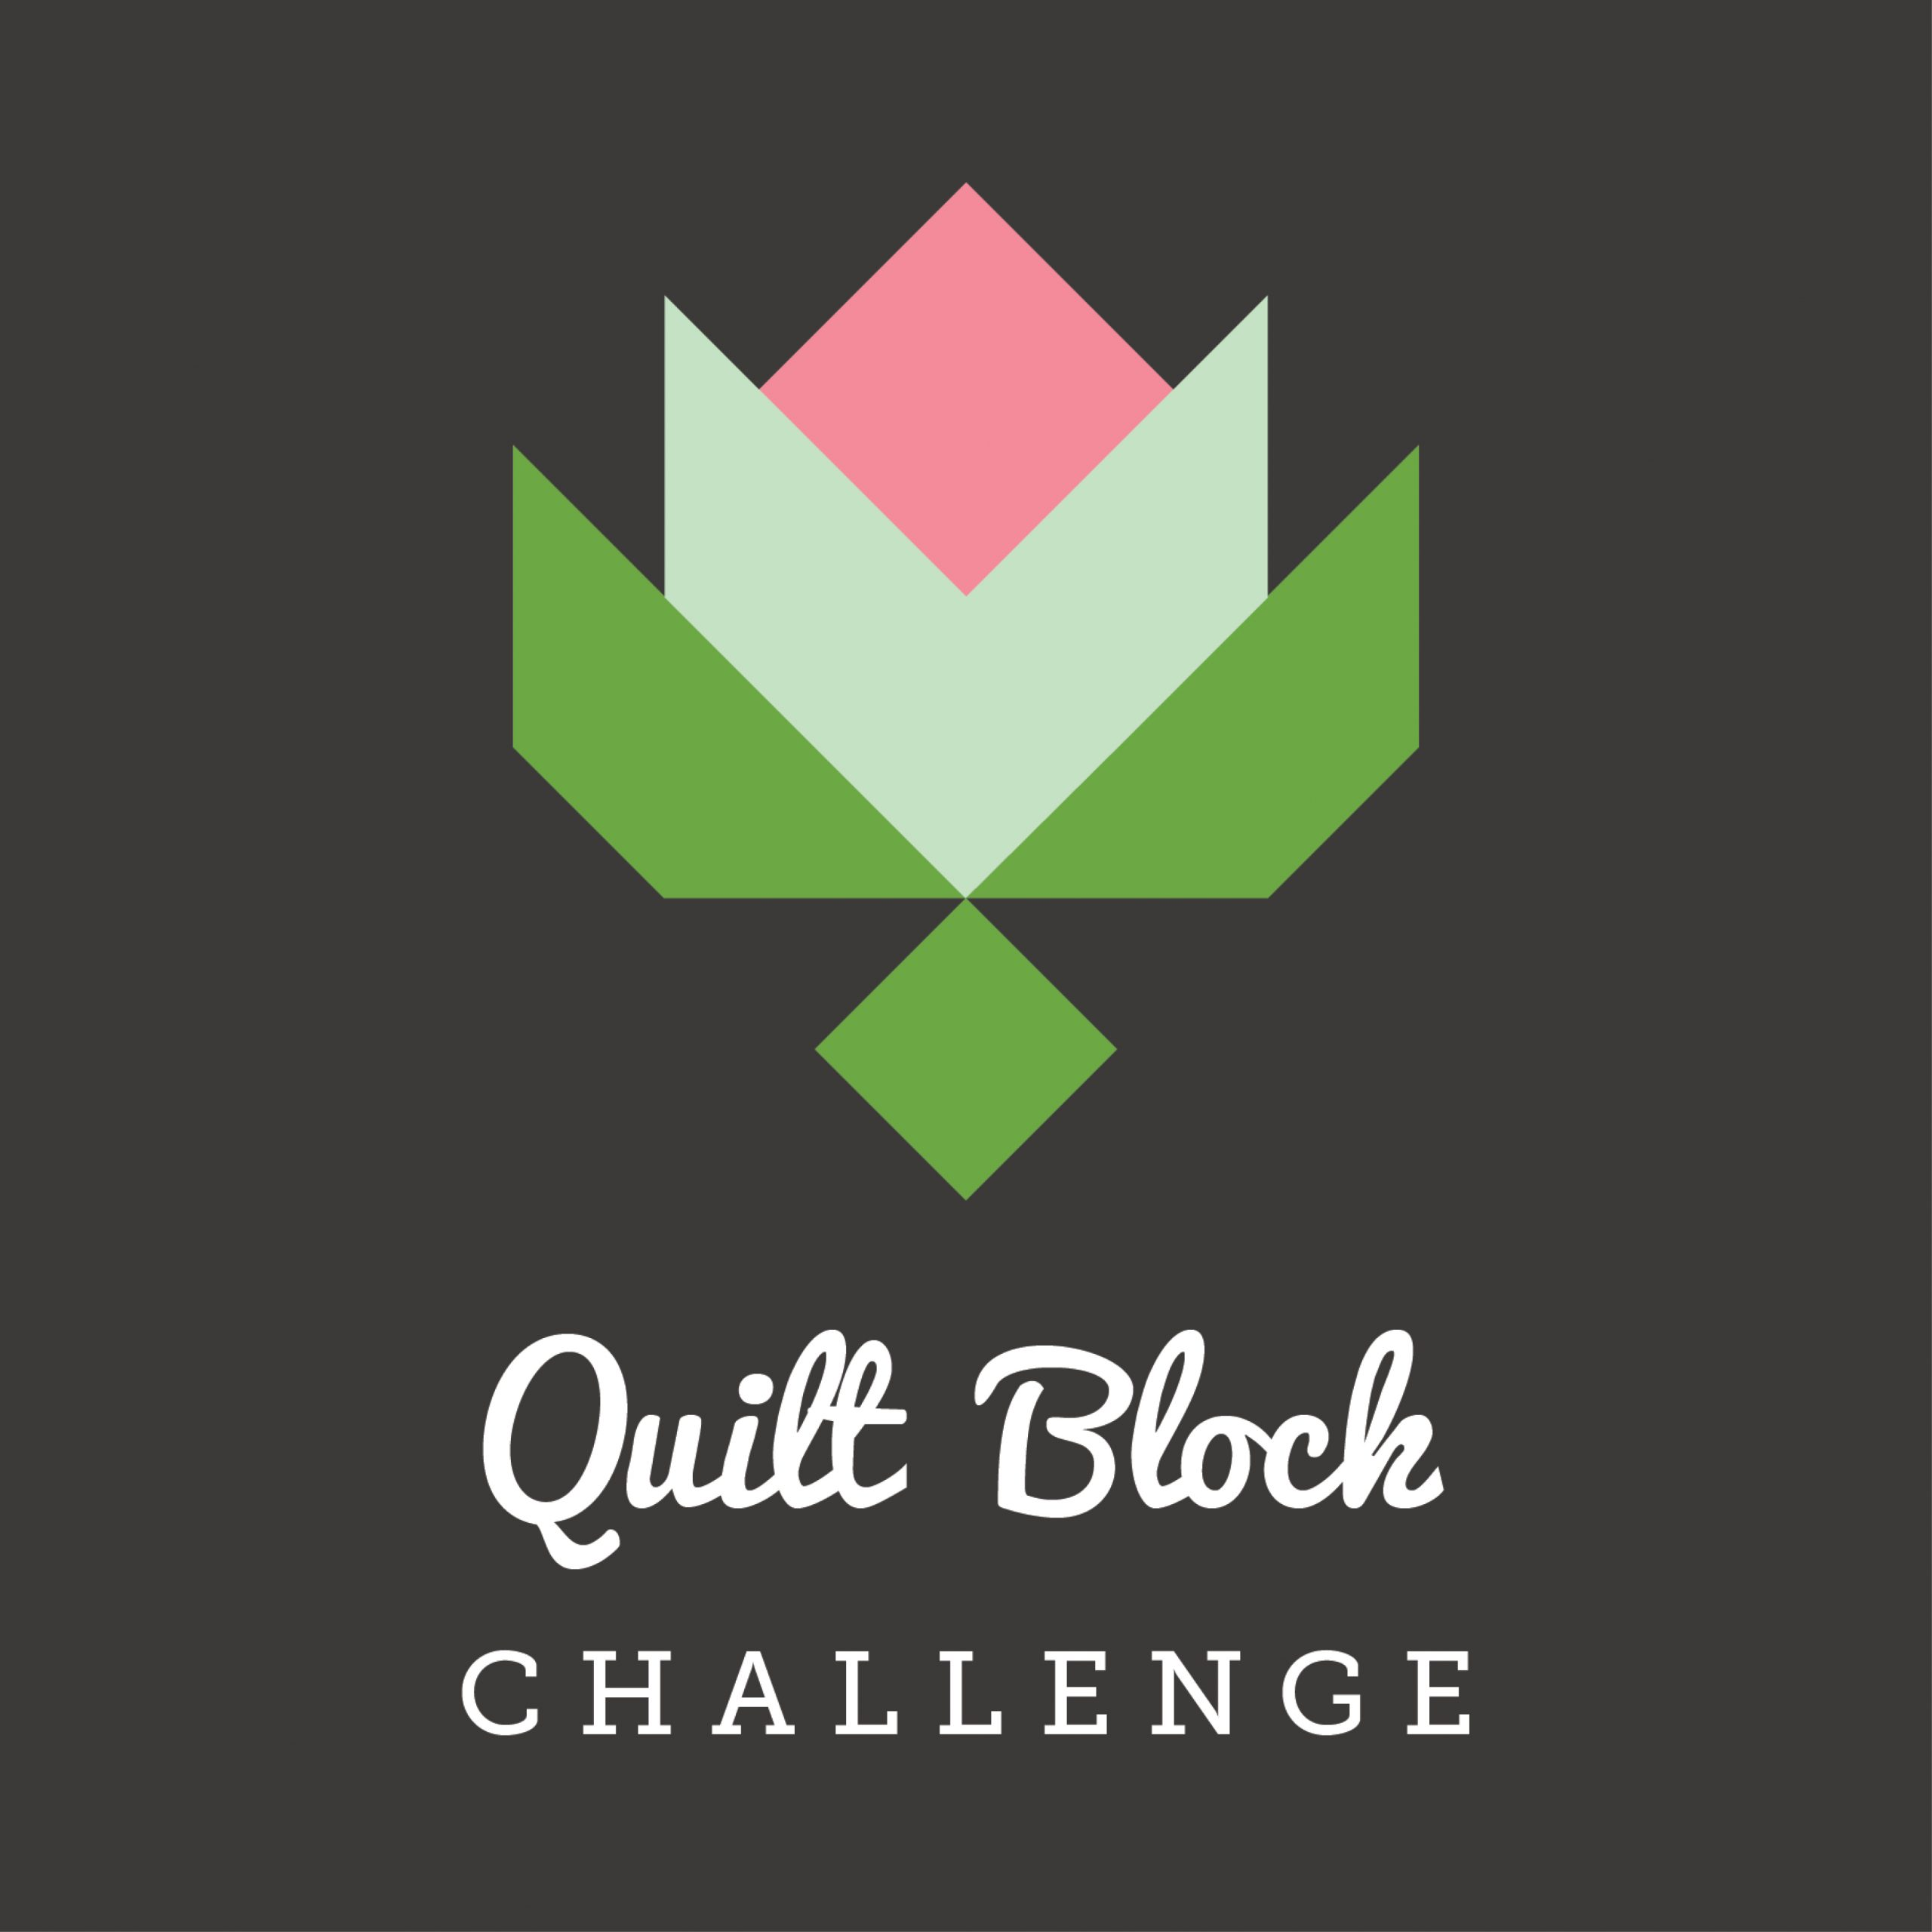 Baskets and Blooms Quilt Block Challenge